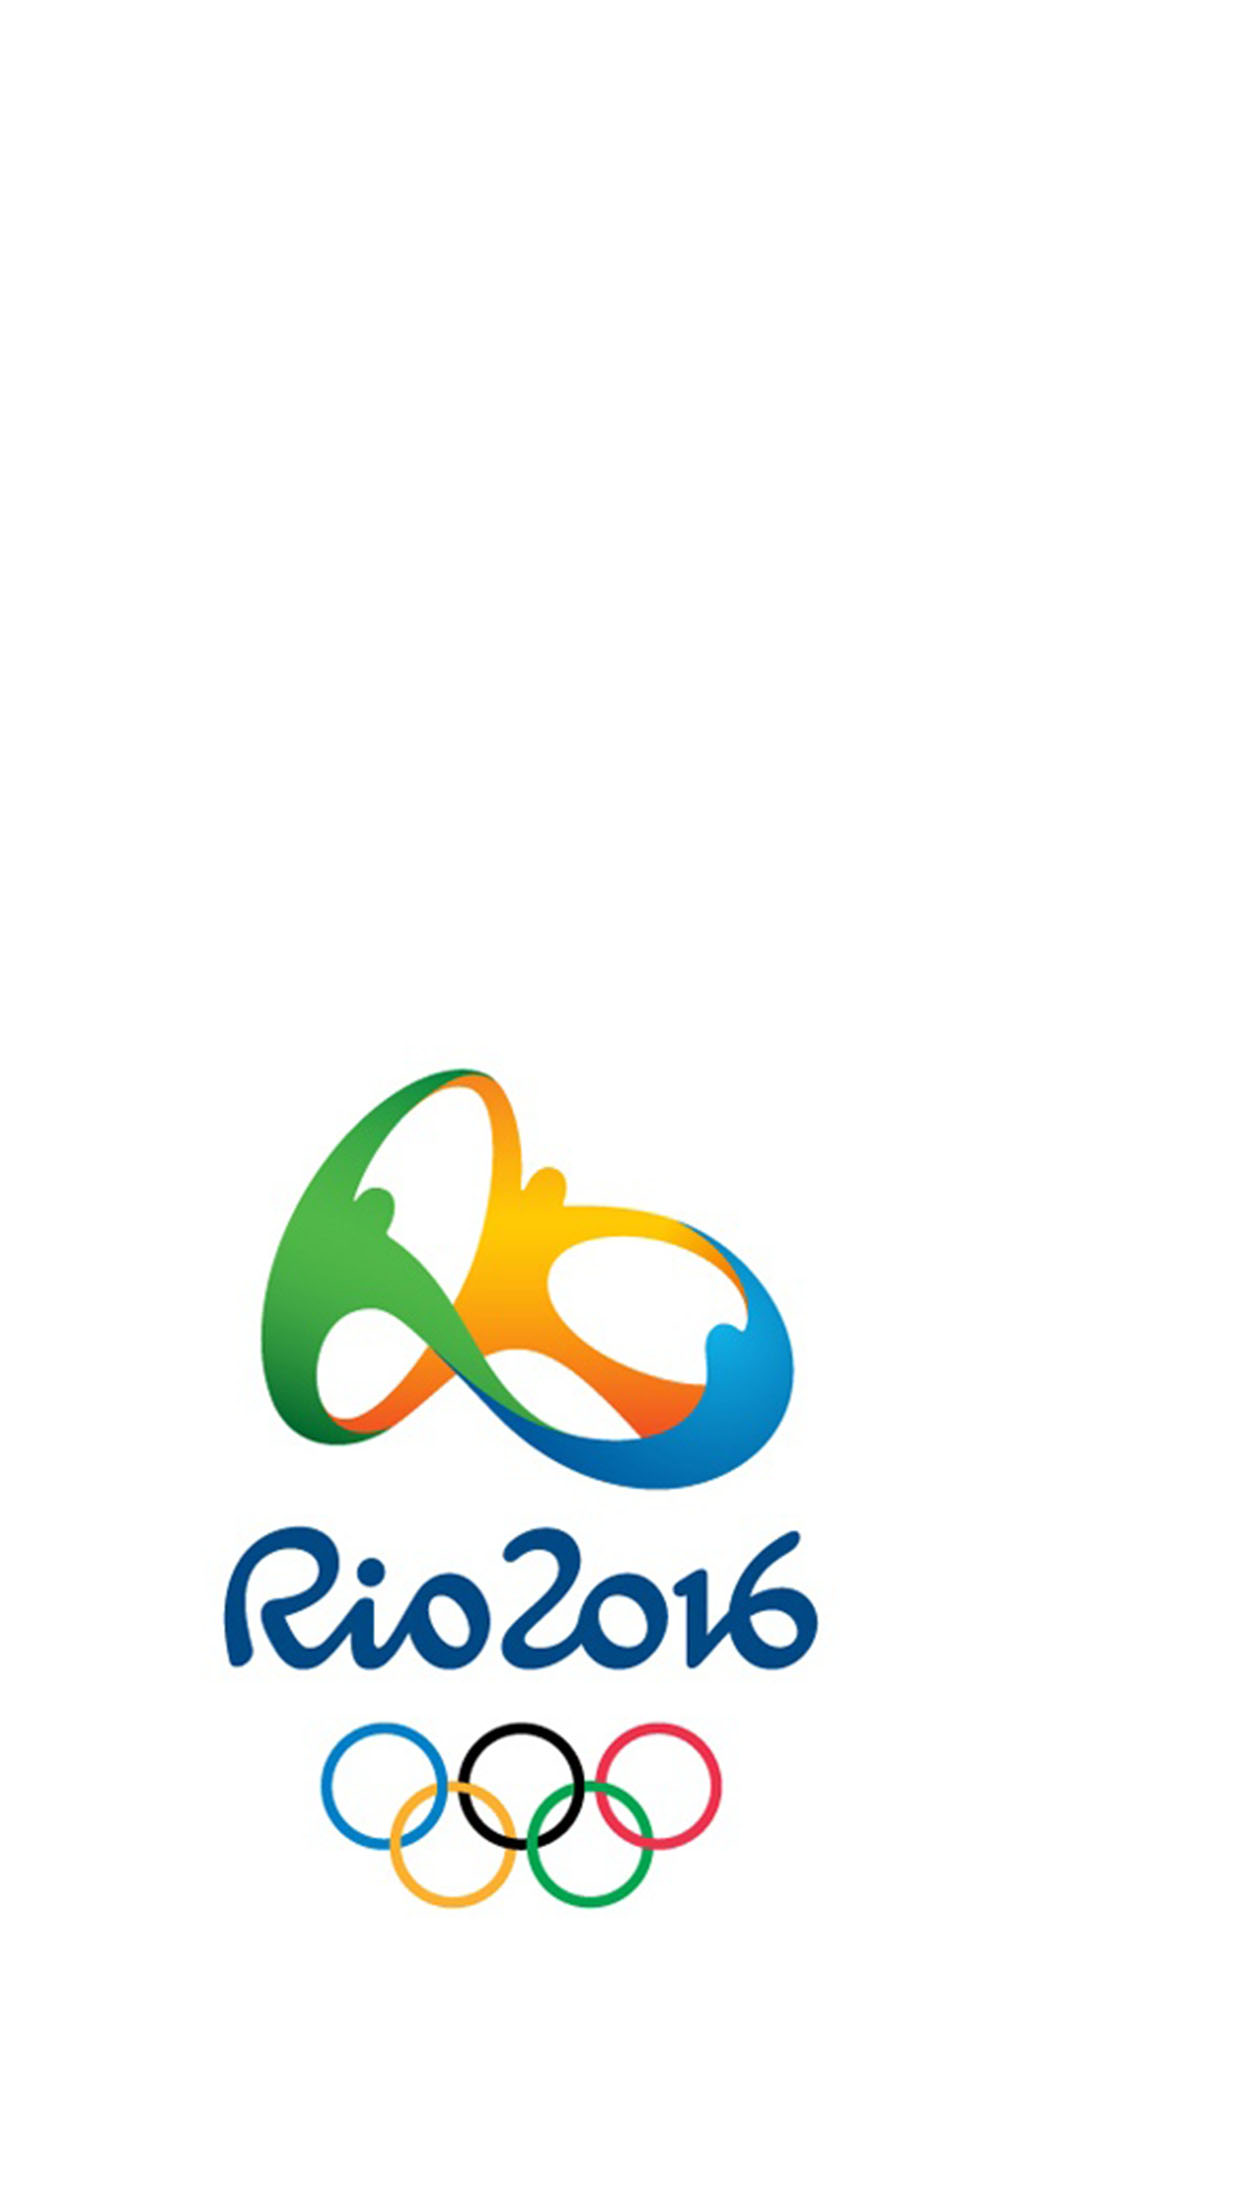 JO RIO 2016 SUMMER OLYMPICS 3Wallpapers iPhone Parallax JO Rio 2016 Summer Olympics